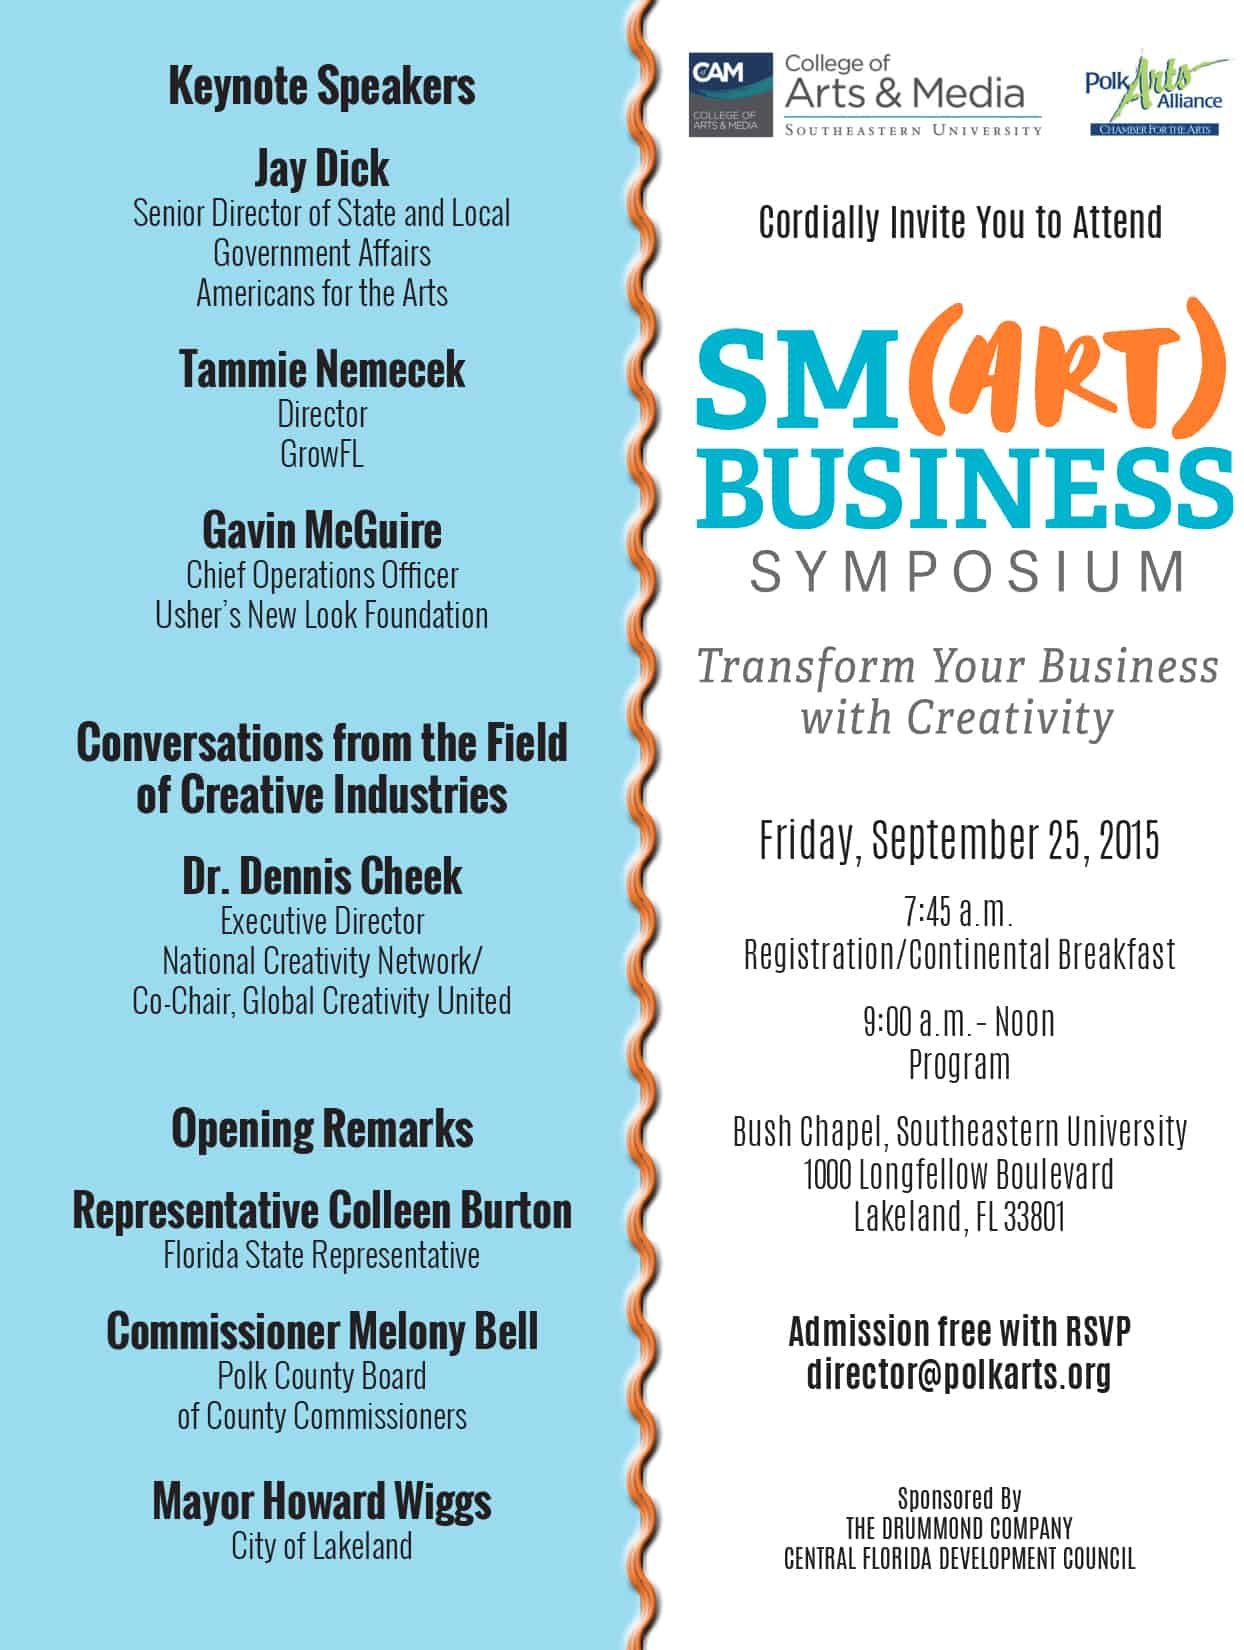 SmART Business Symposium Transforming Your Business With